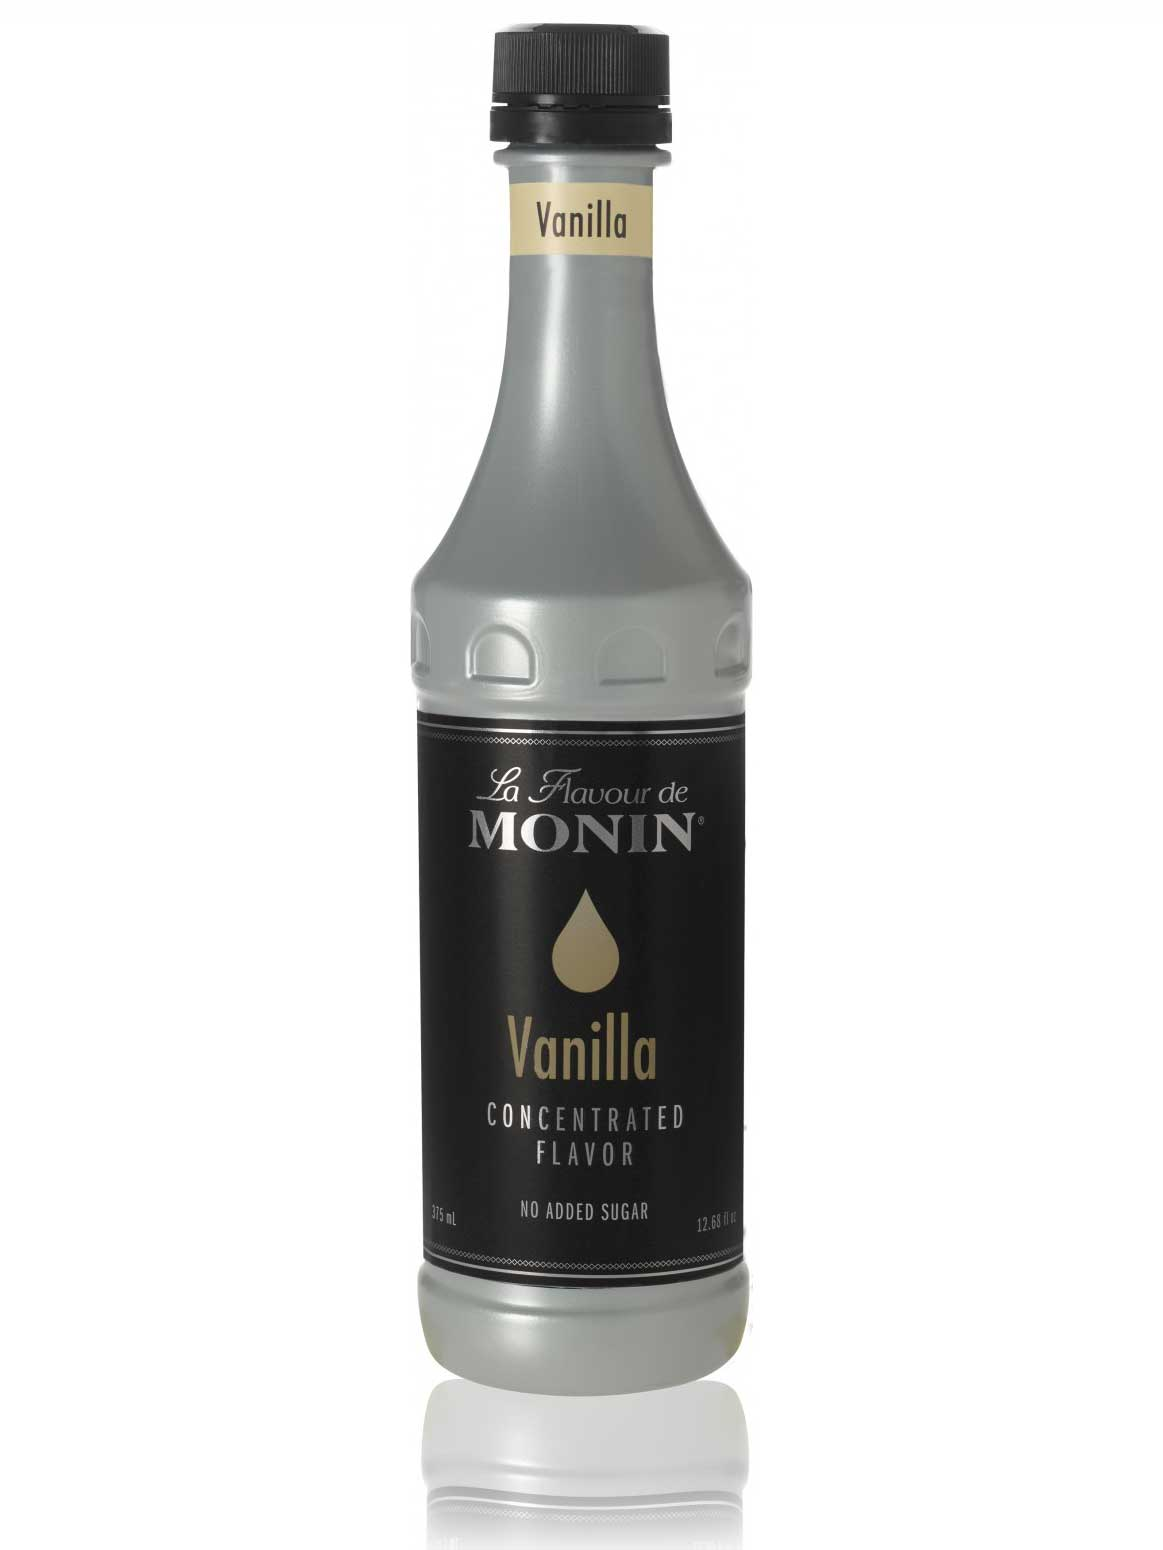 Monin Vanilla Concentrated Flavour (375ml) | Beanwise